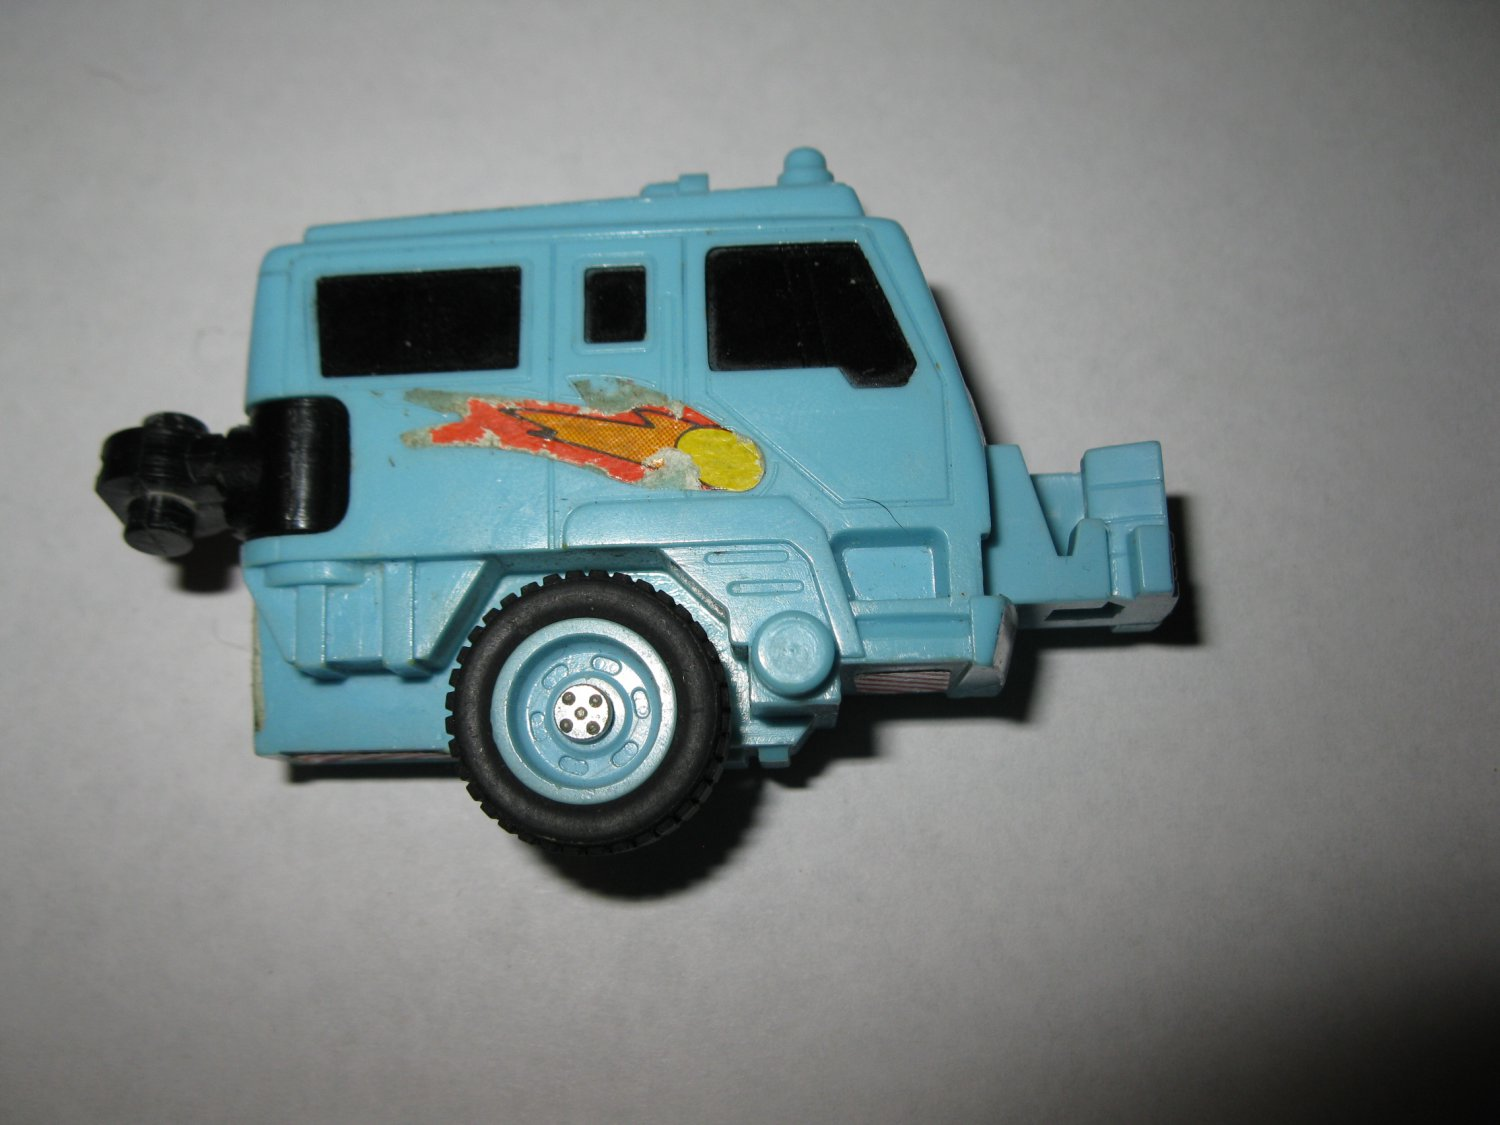 G1 Transformers Action figure part: 1986 Hot Spot - Full Right Arm